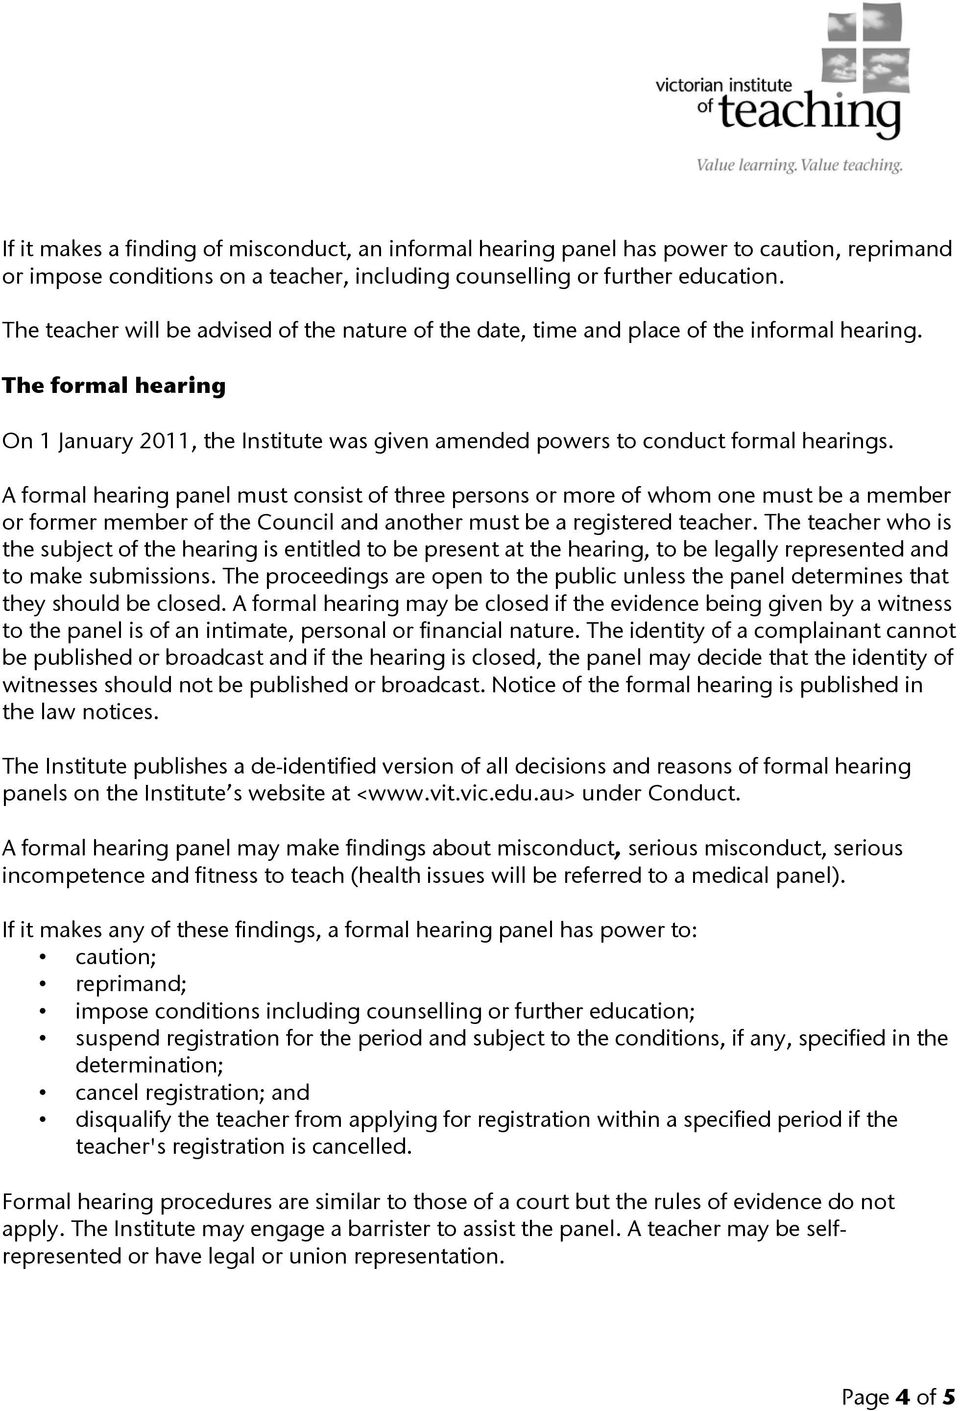 A formal hearing panel must consist of three persons or more of whom one must be a member or former member of the Council and another must be a registered teacher.